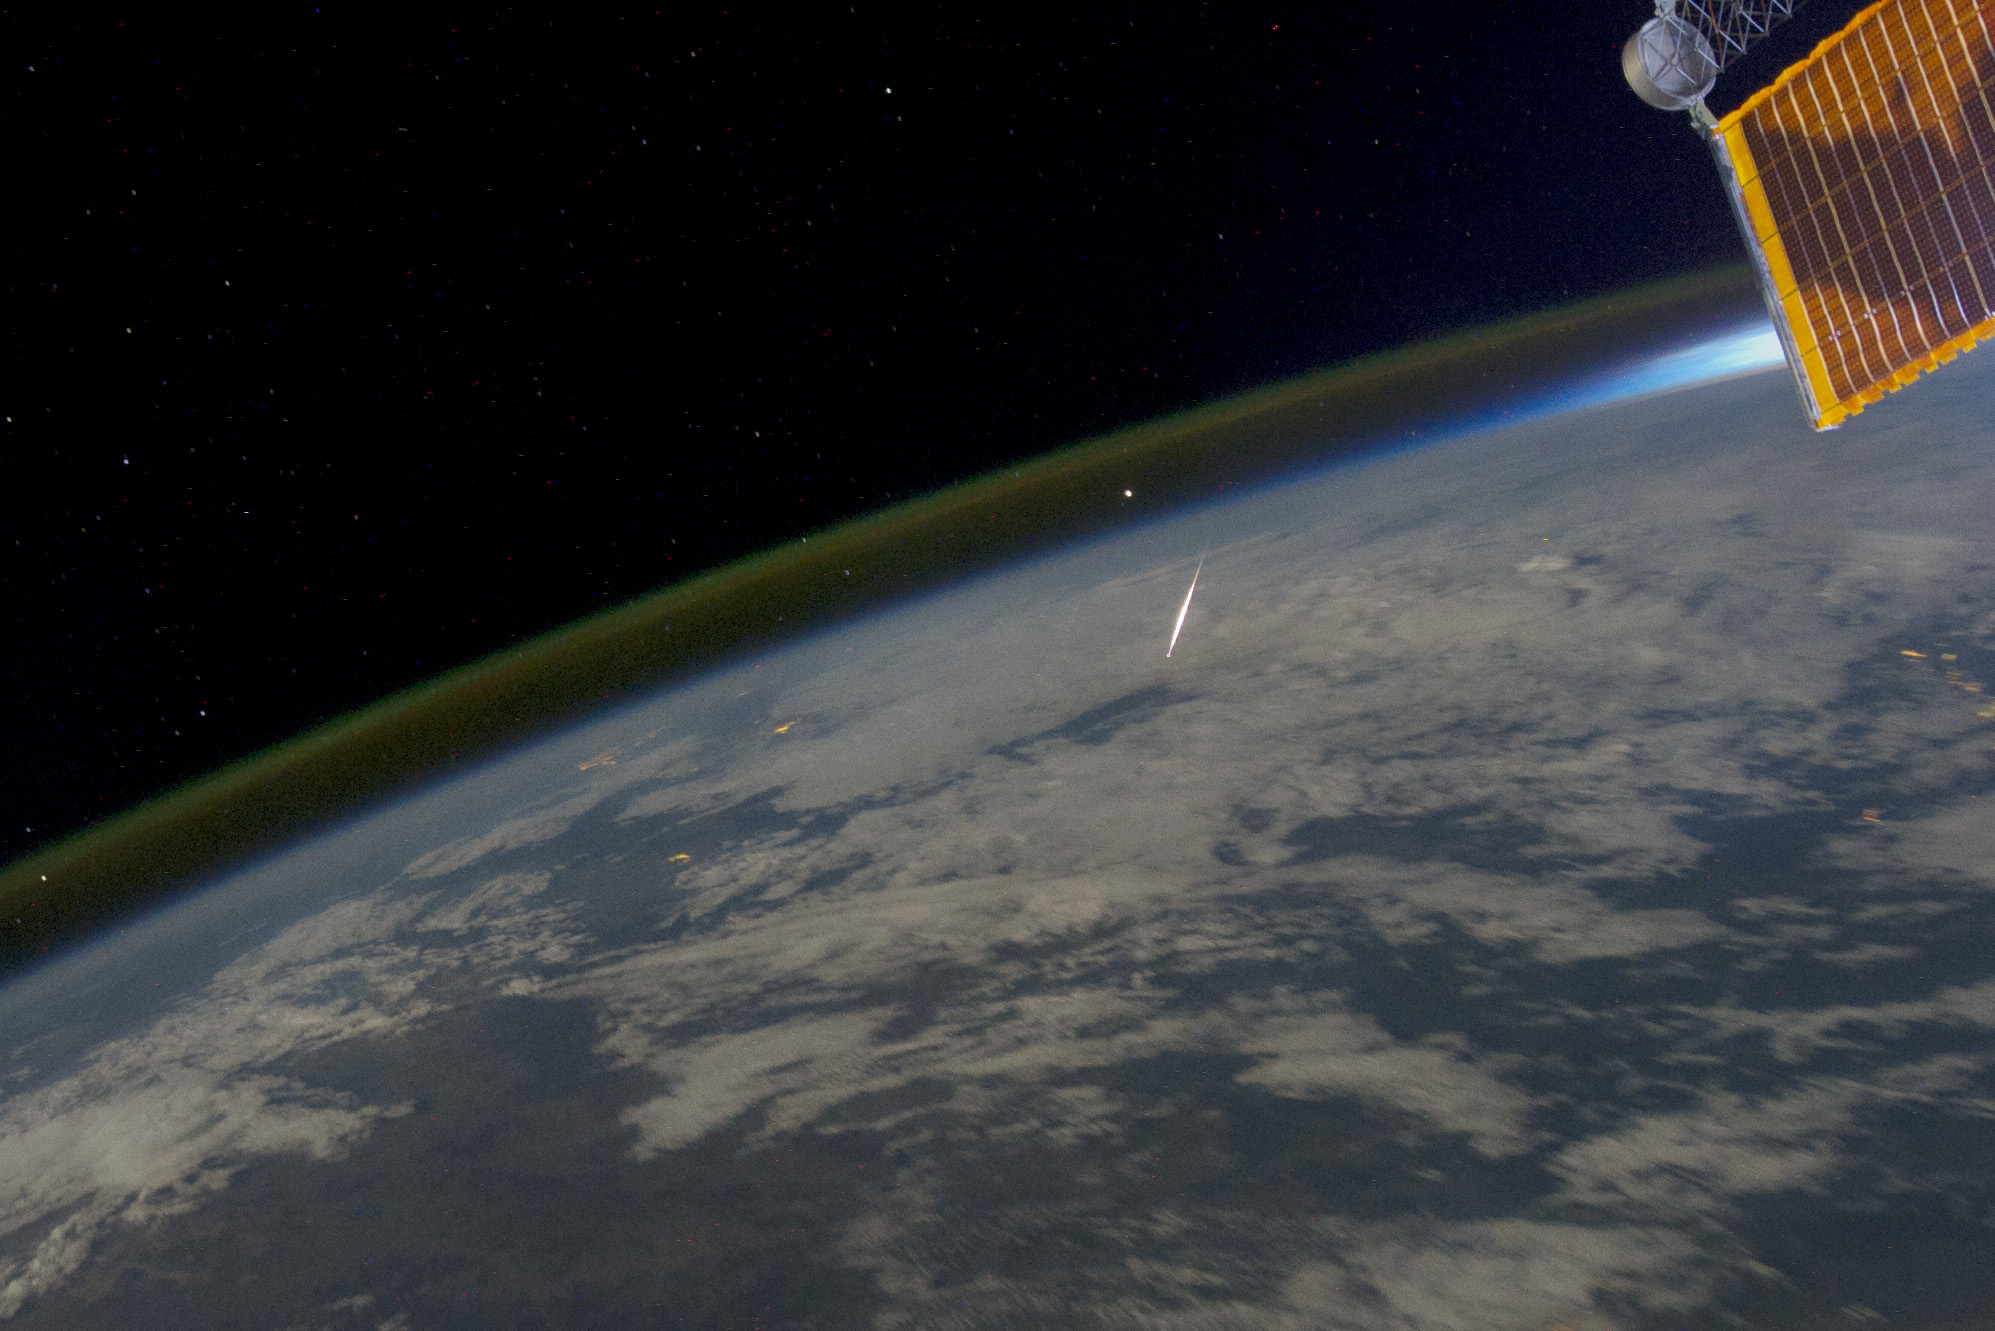 bright streak above curved earth seen from above